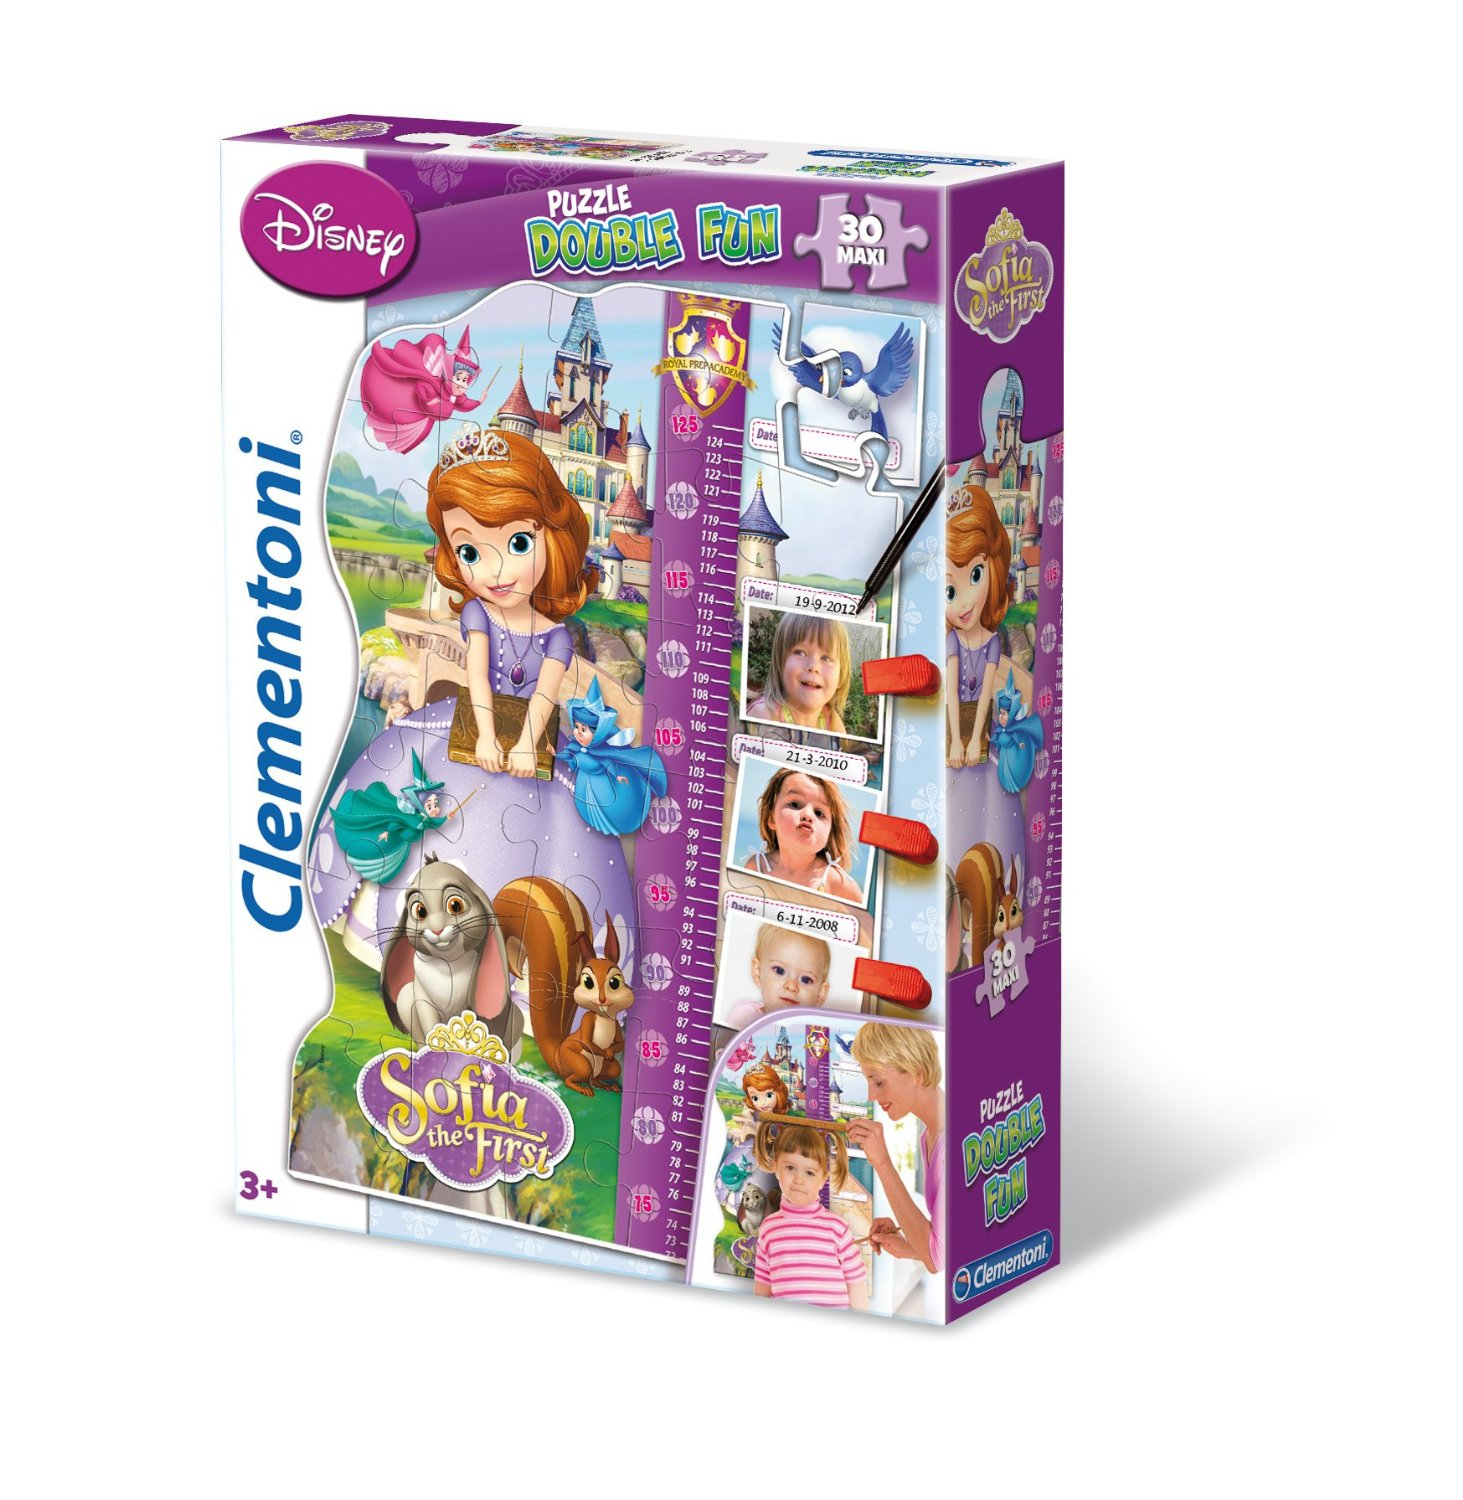 clementoni-puzzle-double-fun-sofia-the-first-30-teile-puzzle-clementoni-20308